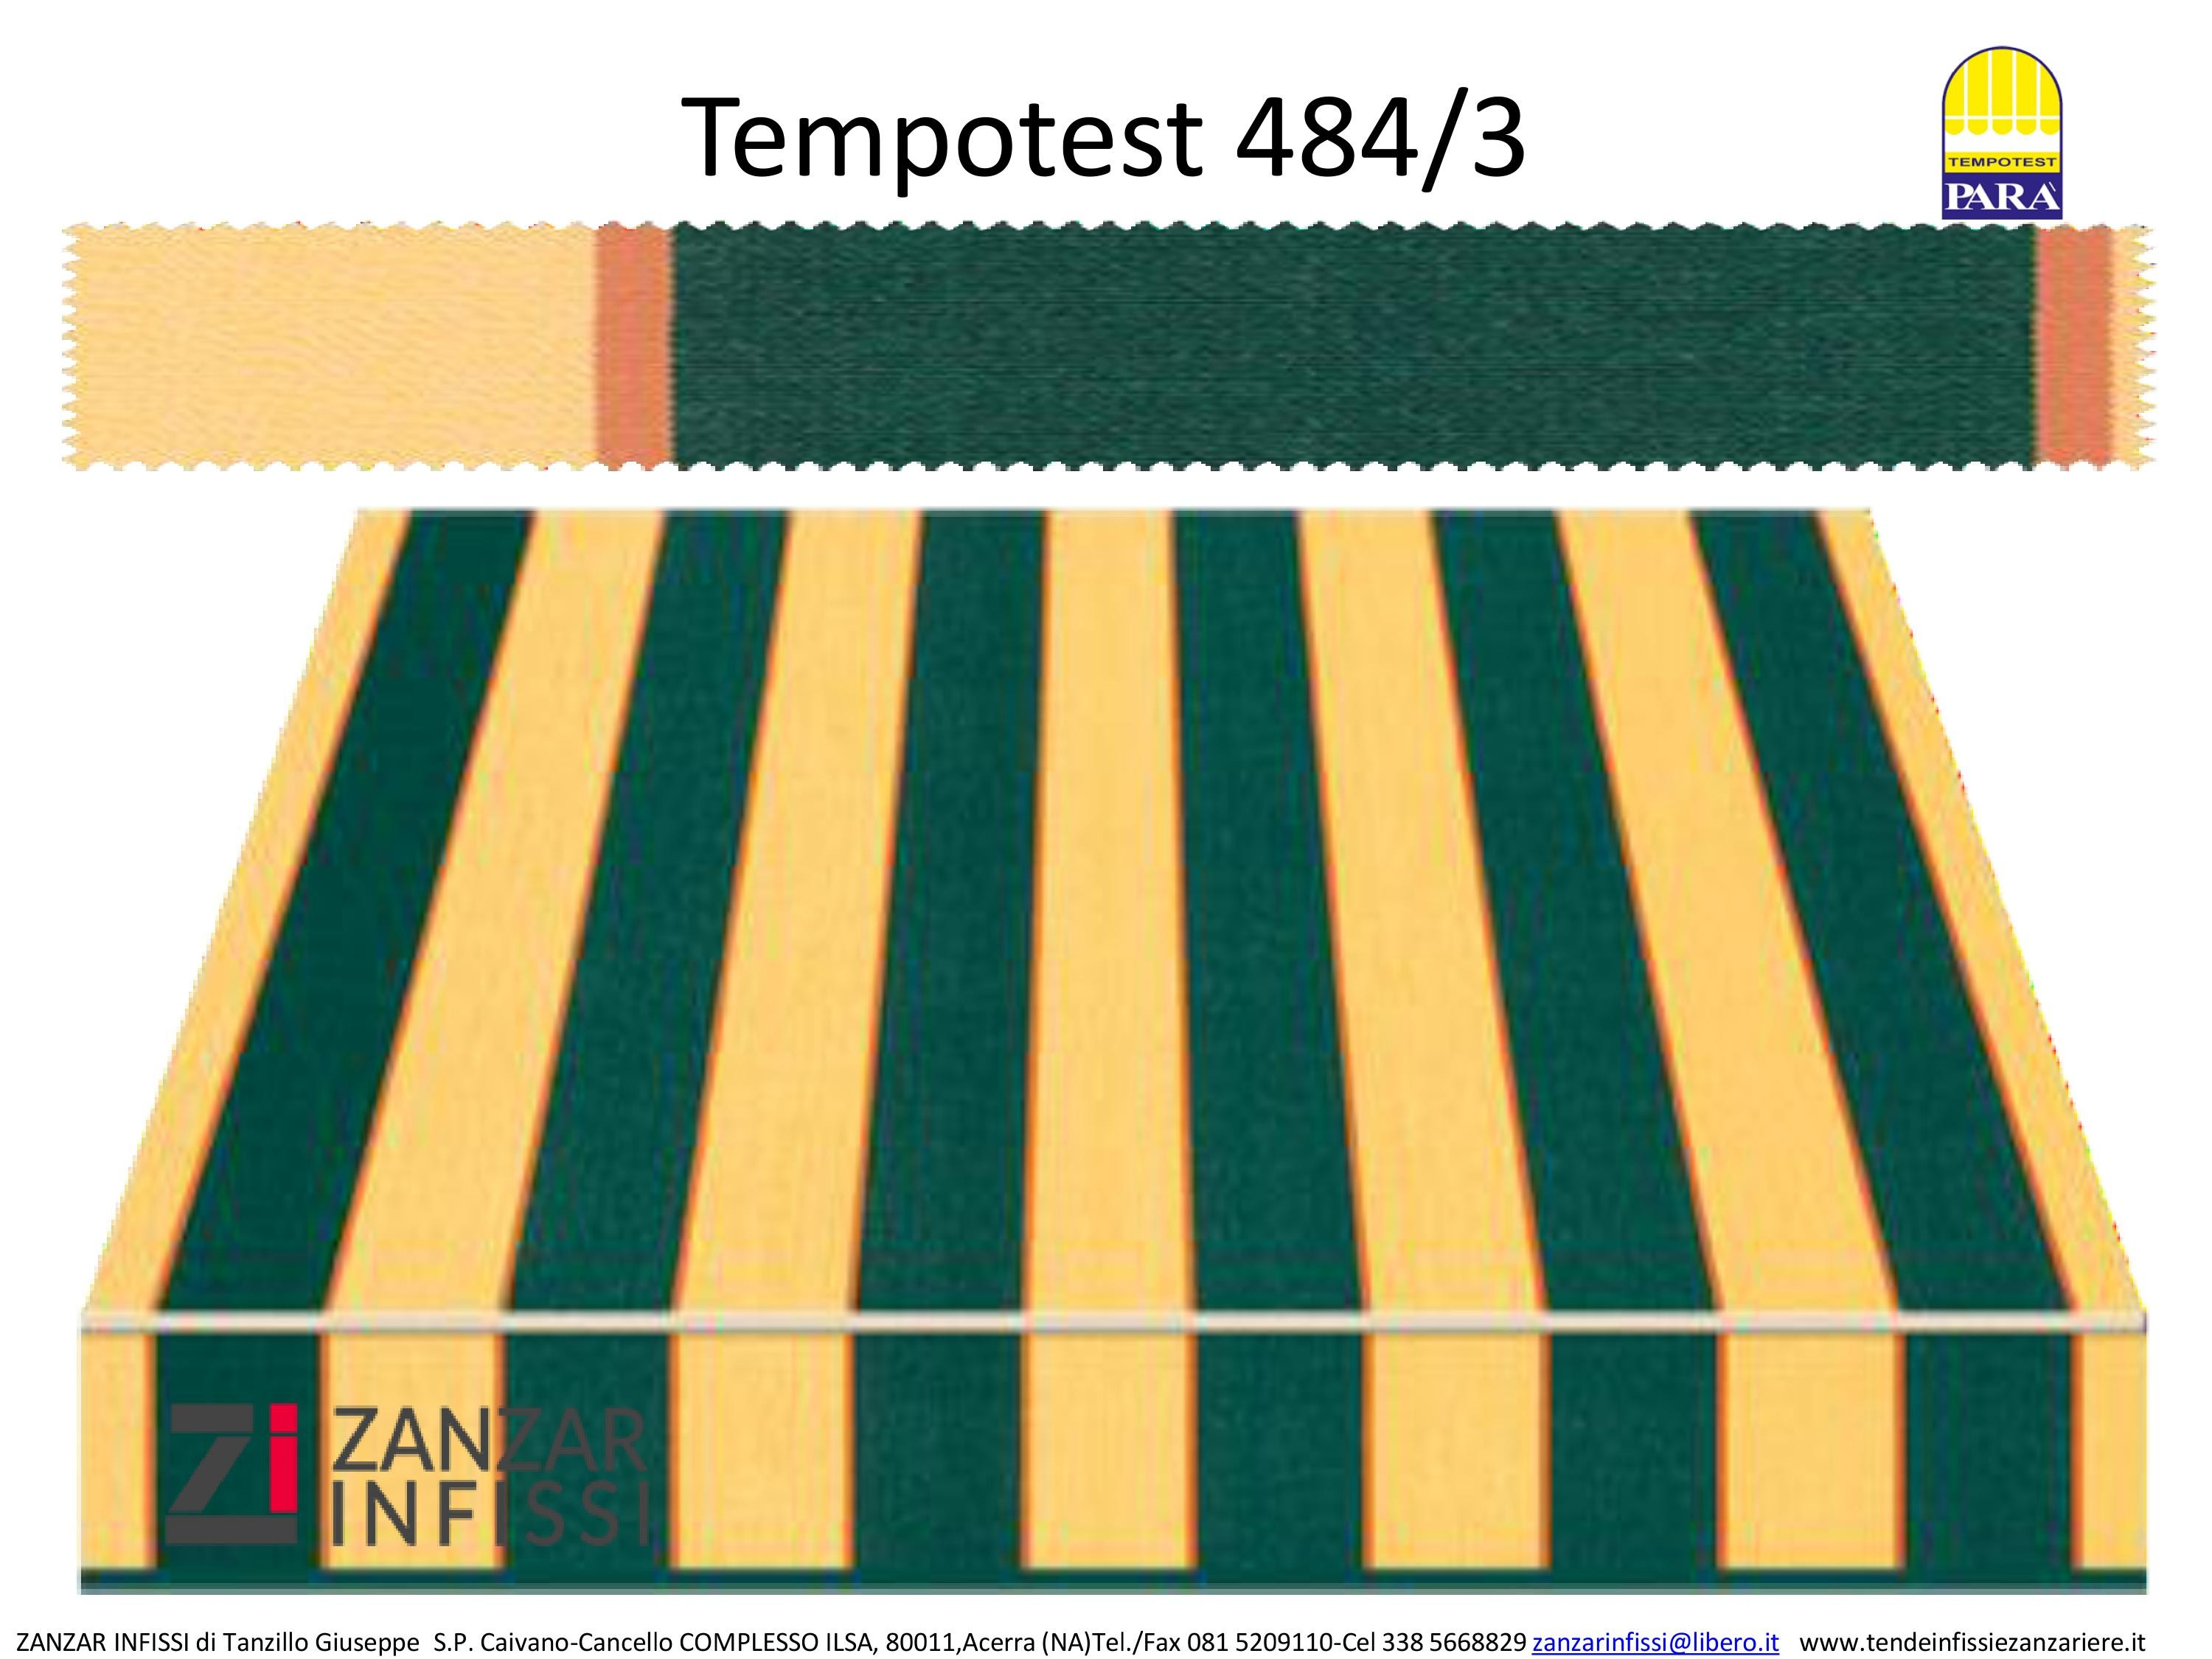 Tempotest 484/3